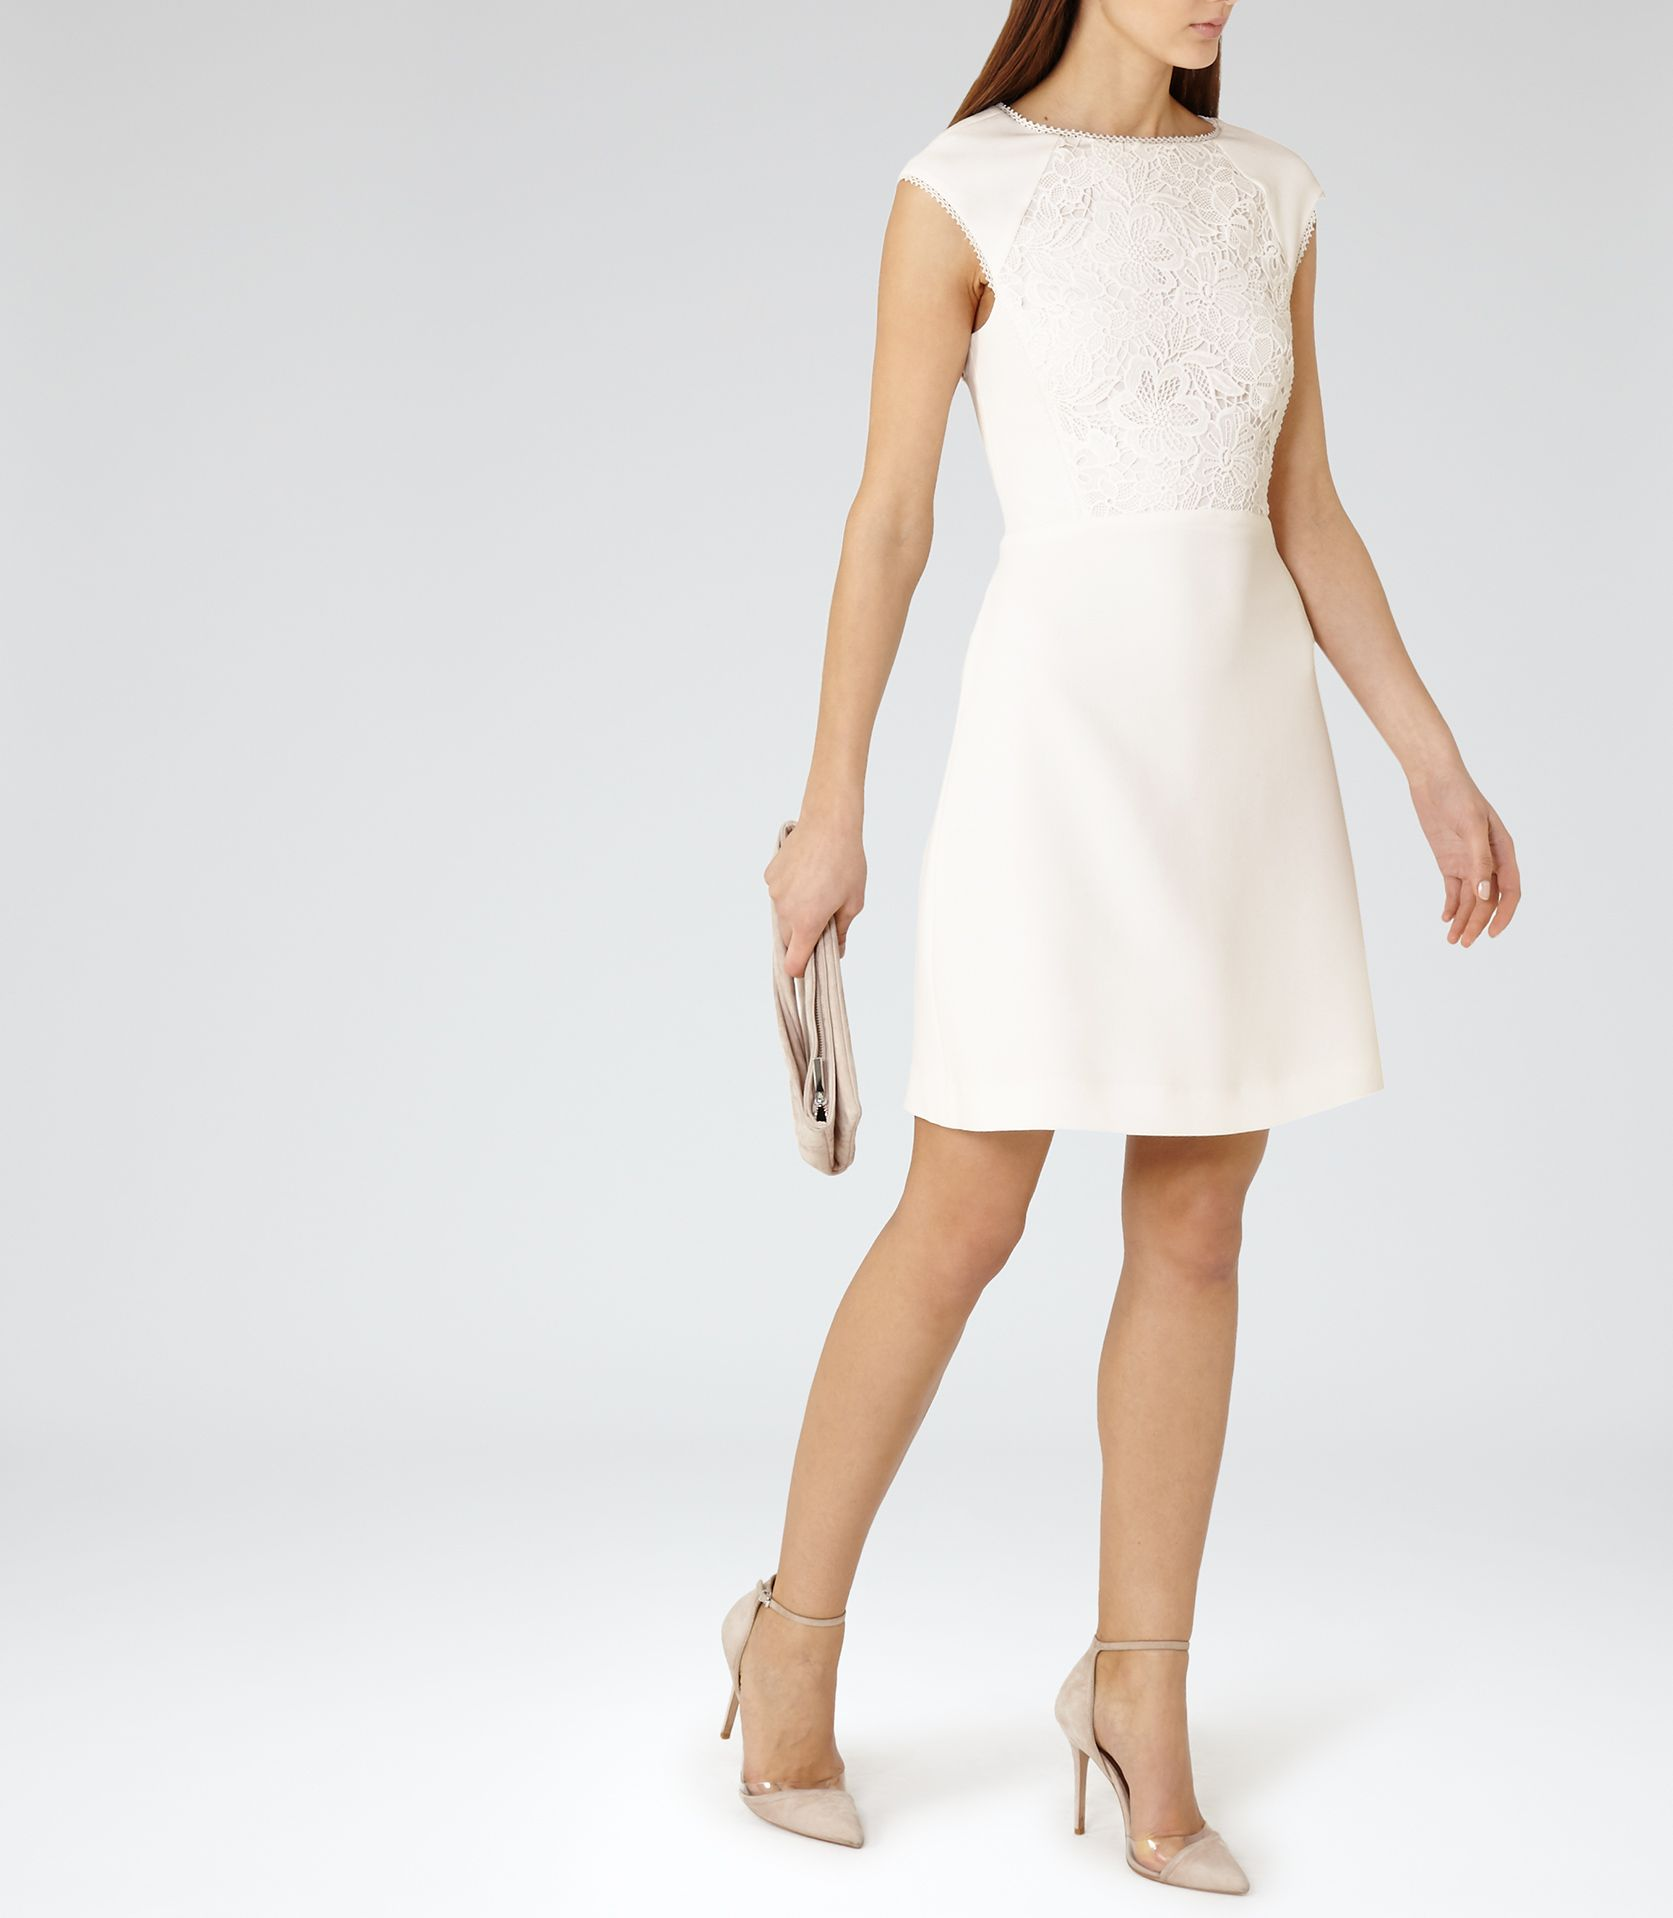 Womens Off White Lace-panel Dress - Reiss Talithia | bridesmaids ...